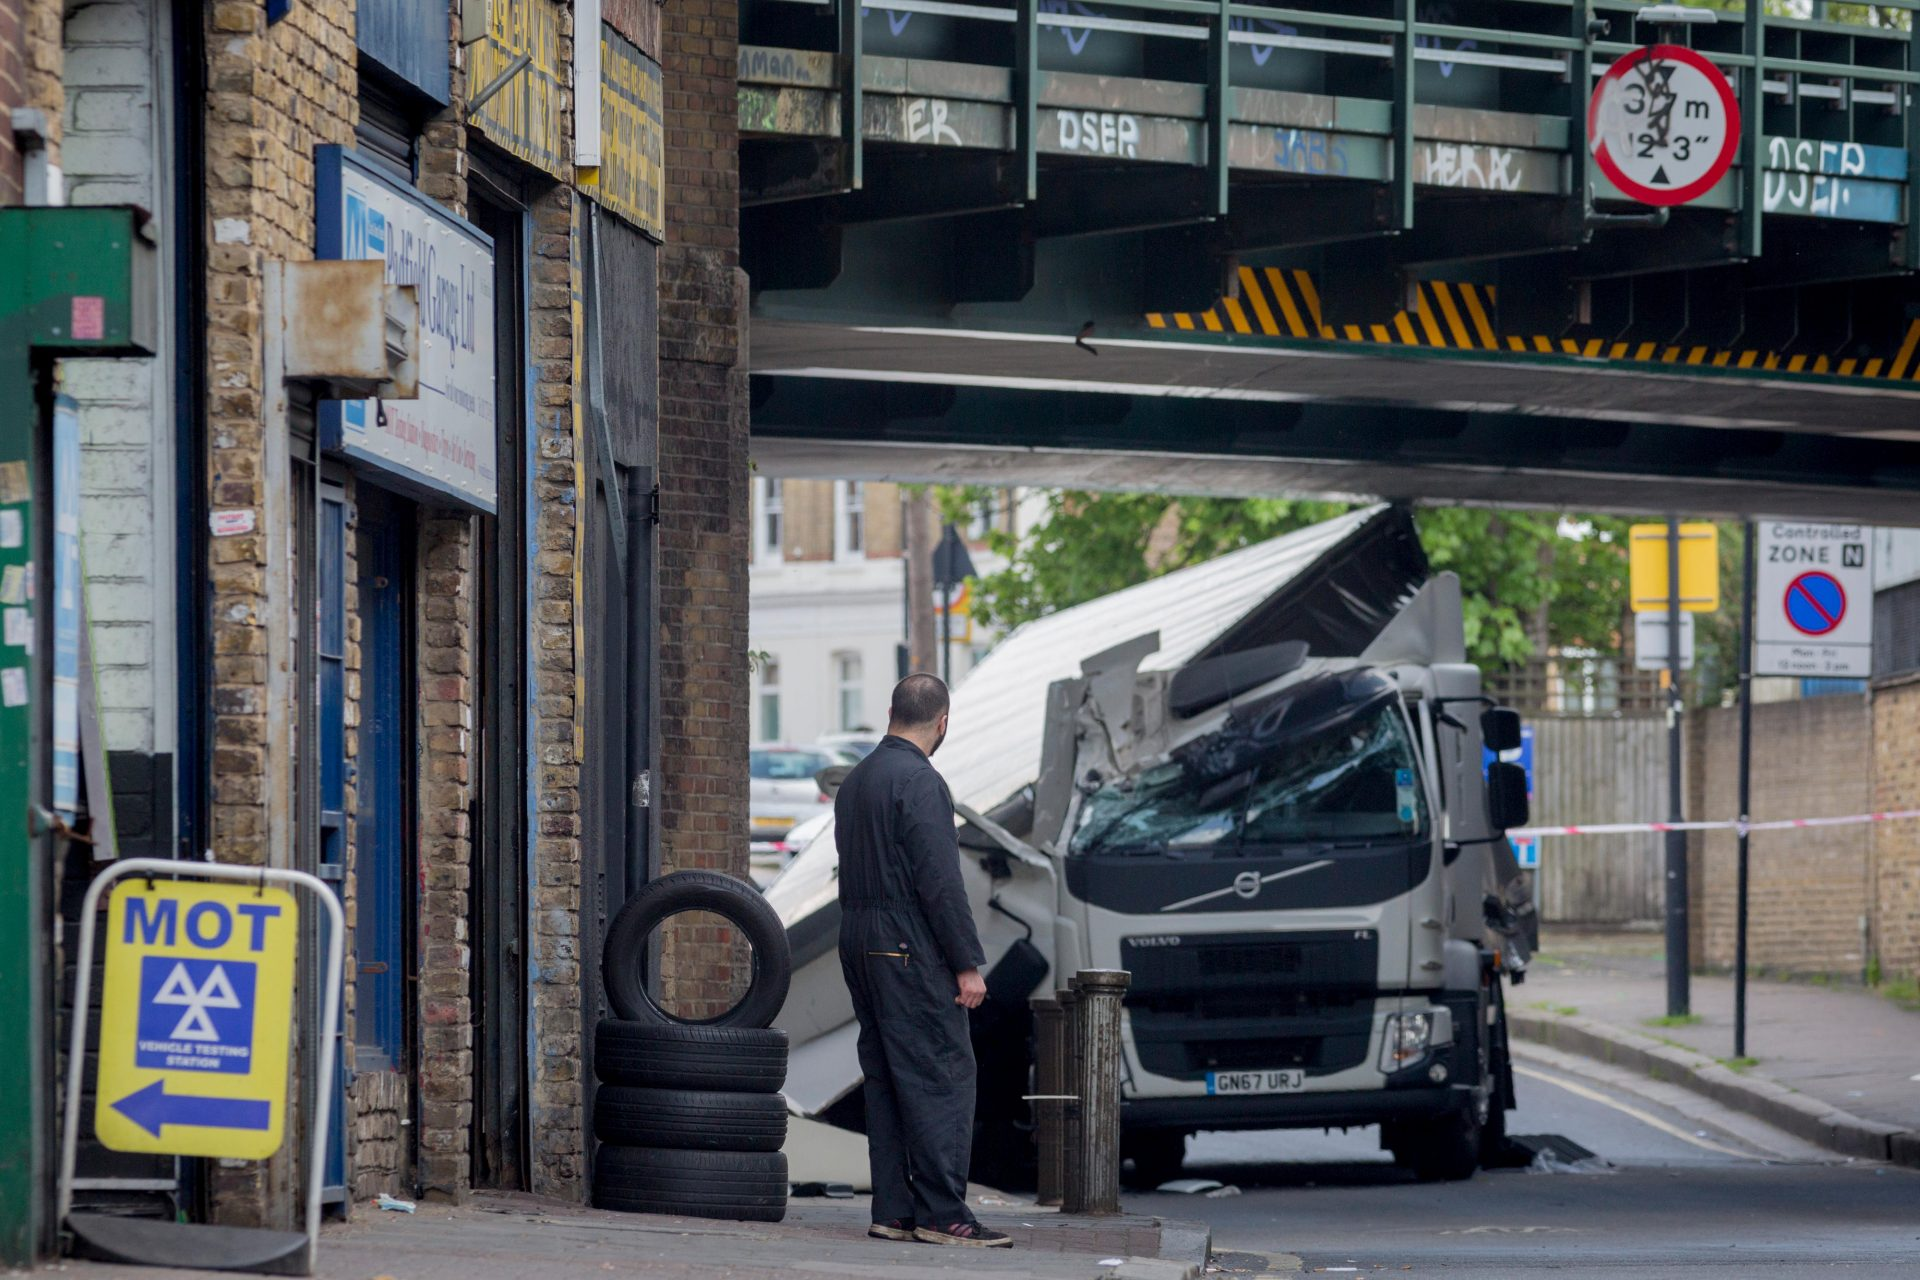 What could possibly go wrong if lorry driver training standards are relaxed? Photo: Richard Baker/In Pictures via Getty Images.